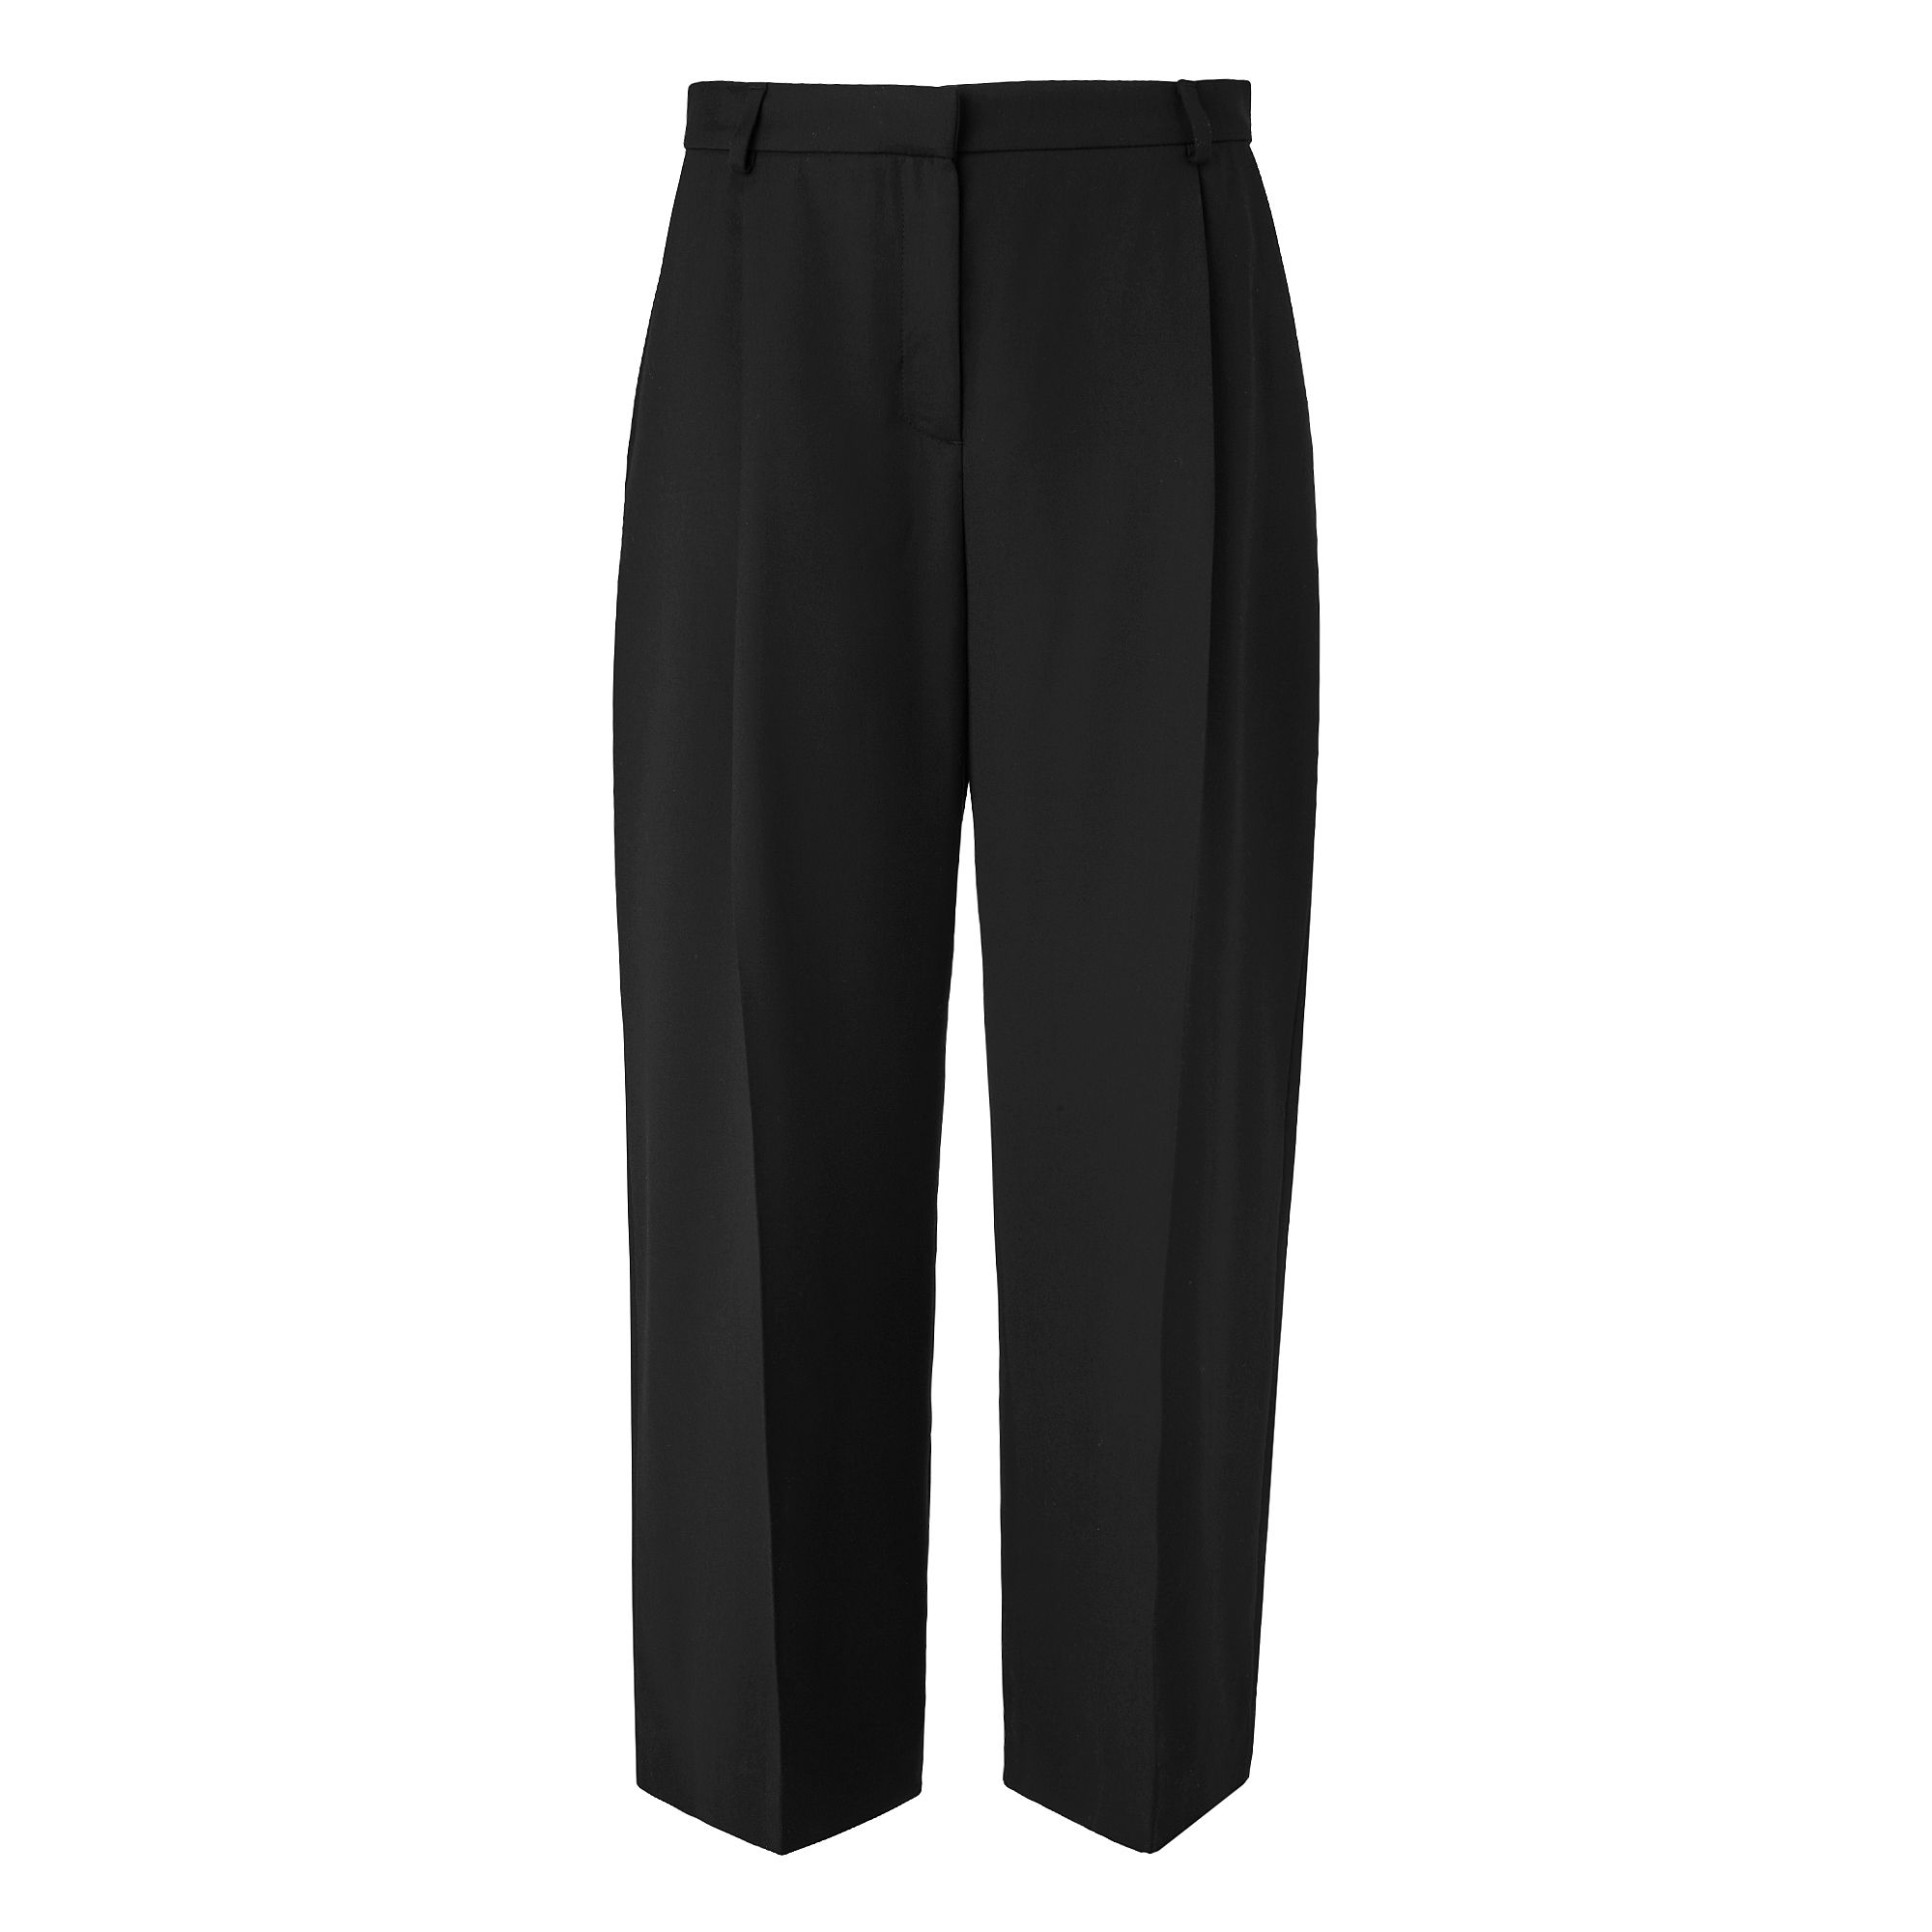 L.K. Bennett Elma Pleat Wide Leg Trousers, Black